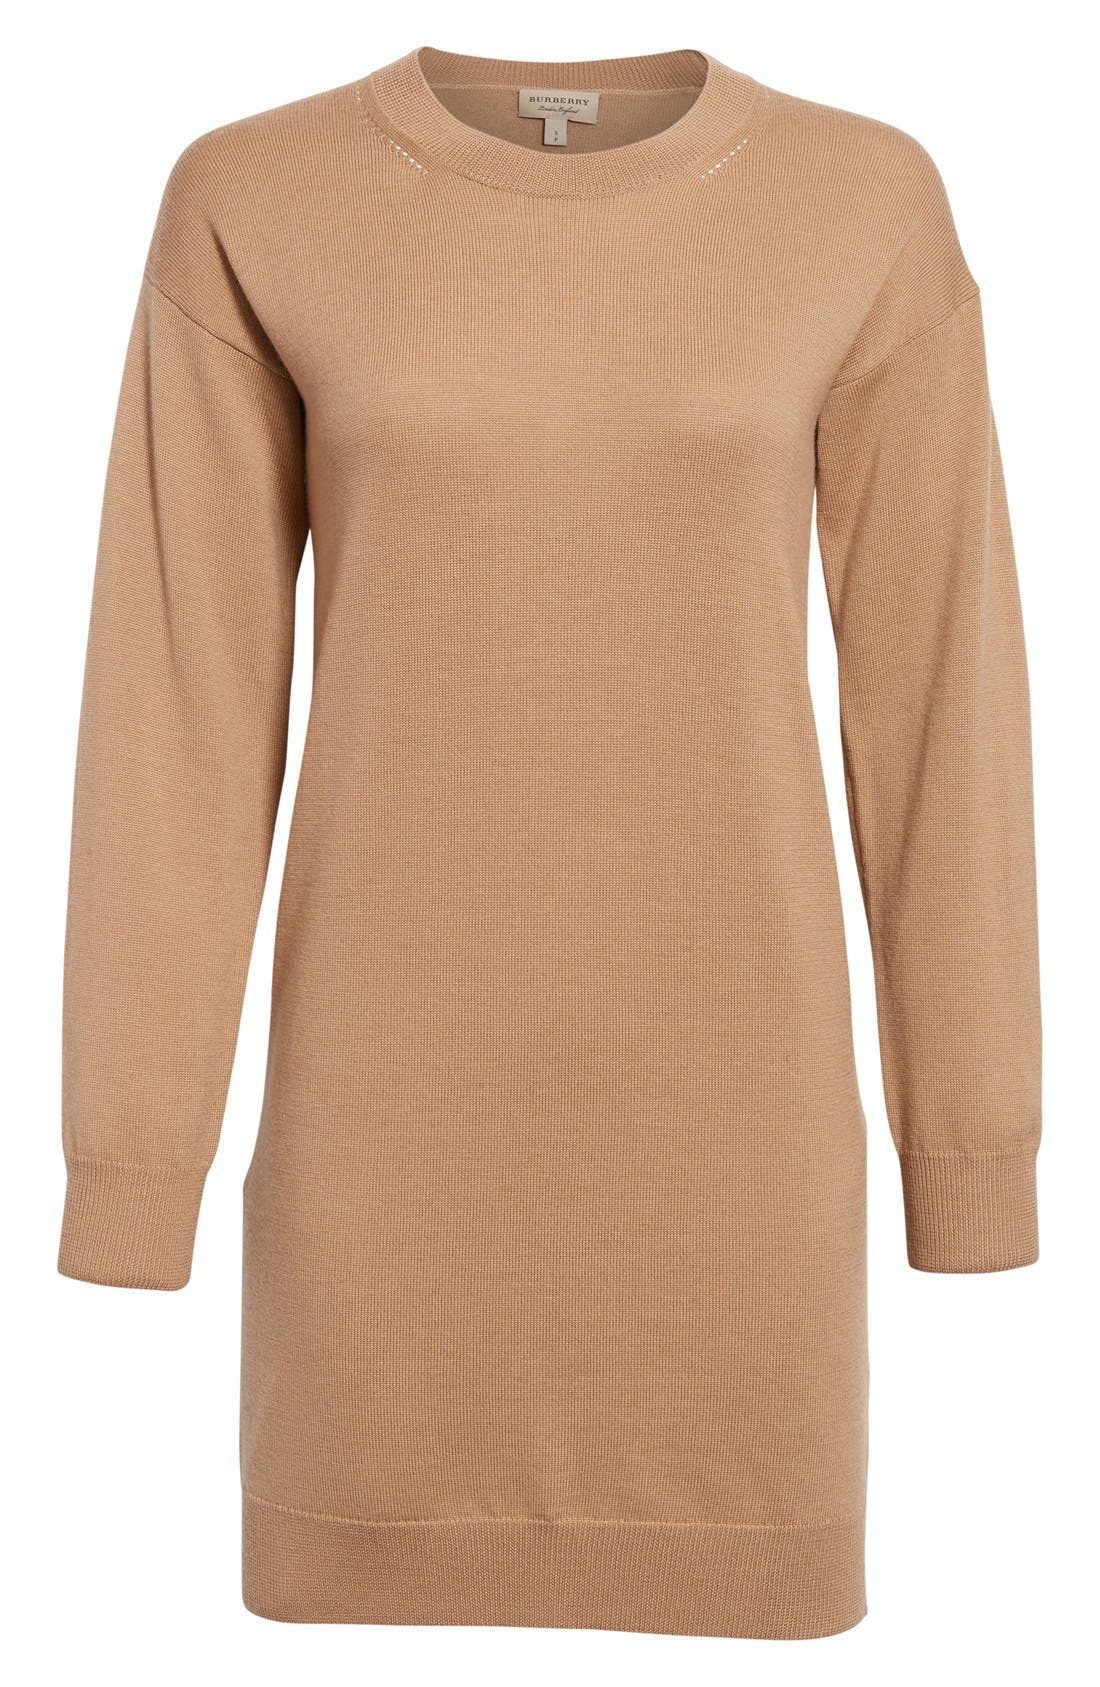 Alewater Elbow Patch Merino Wool Dress,                             Alternate thumbnail 4, color,                             Camel